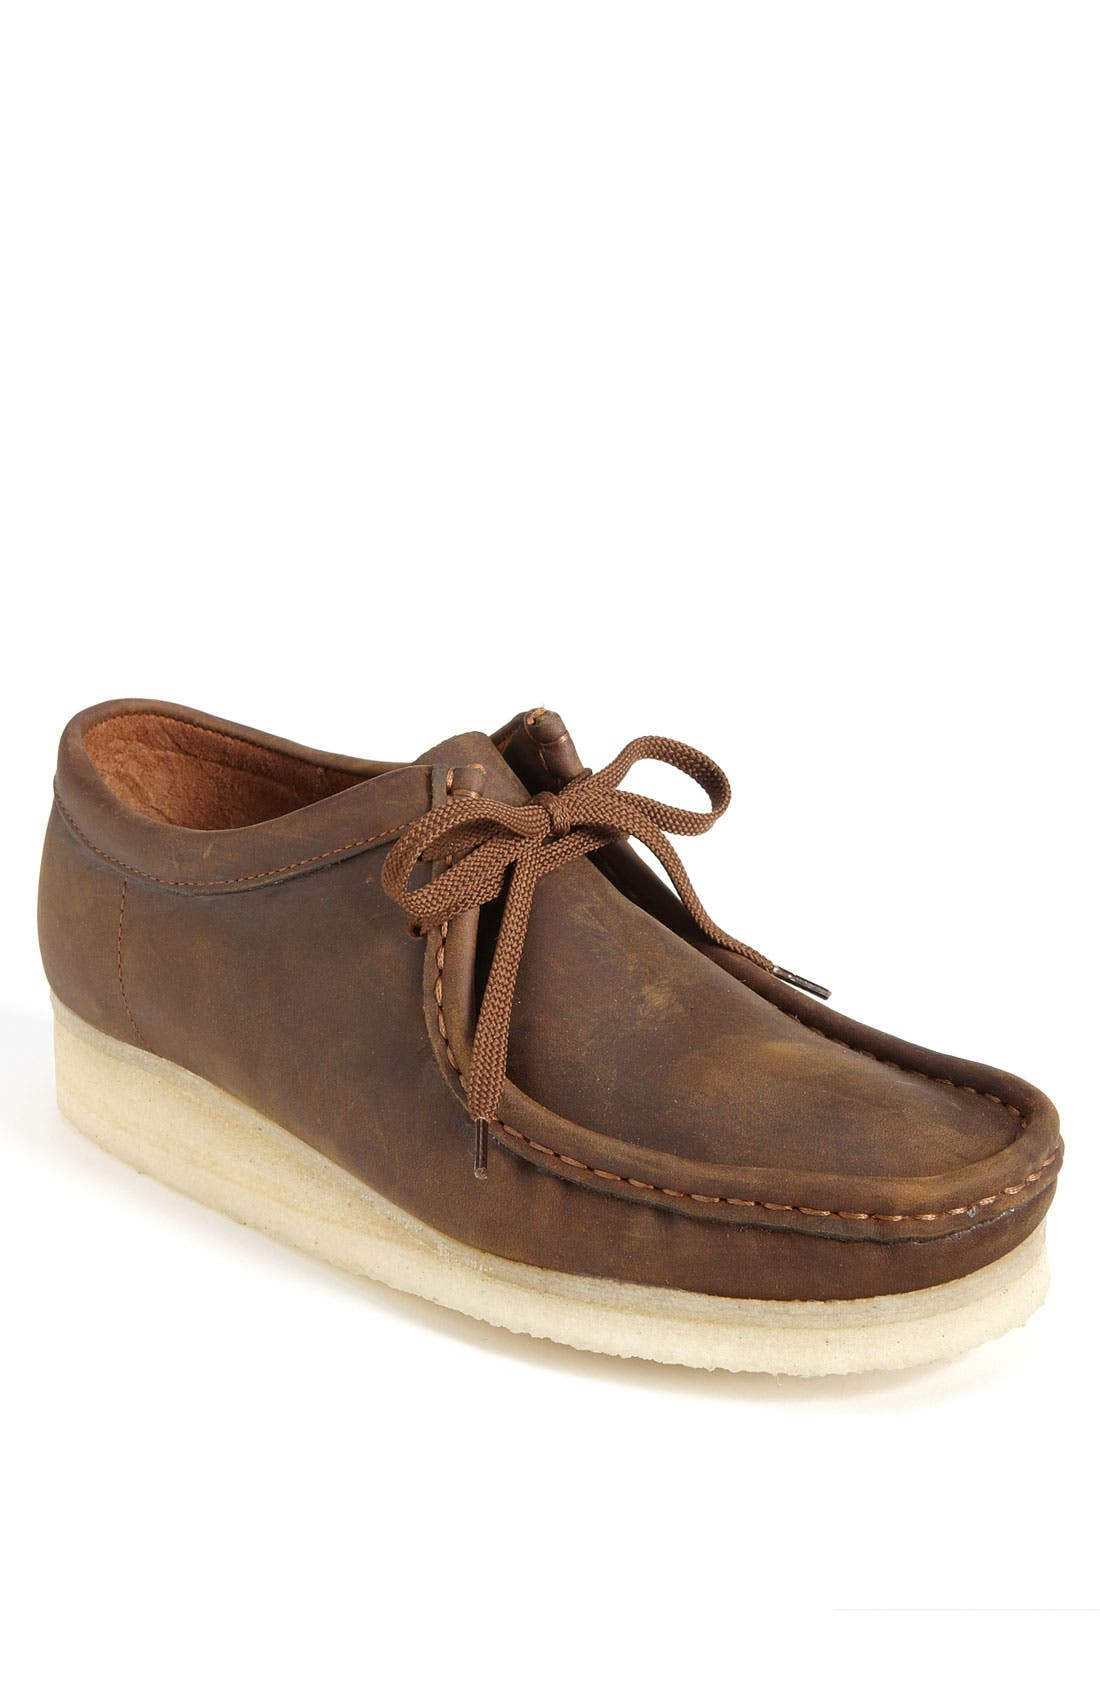 Alternate Image 1 Selected - Clarks® Originals 'Wallabee' Moc Toe Derby (Online Only)   (Men)